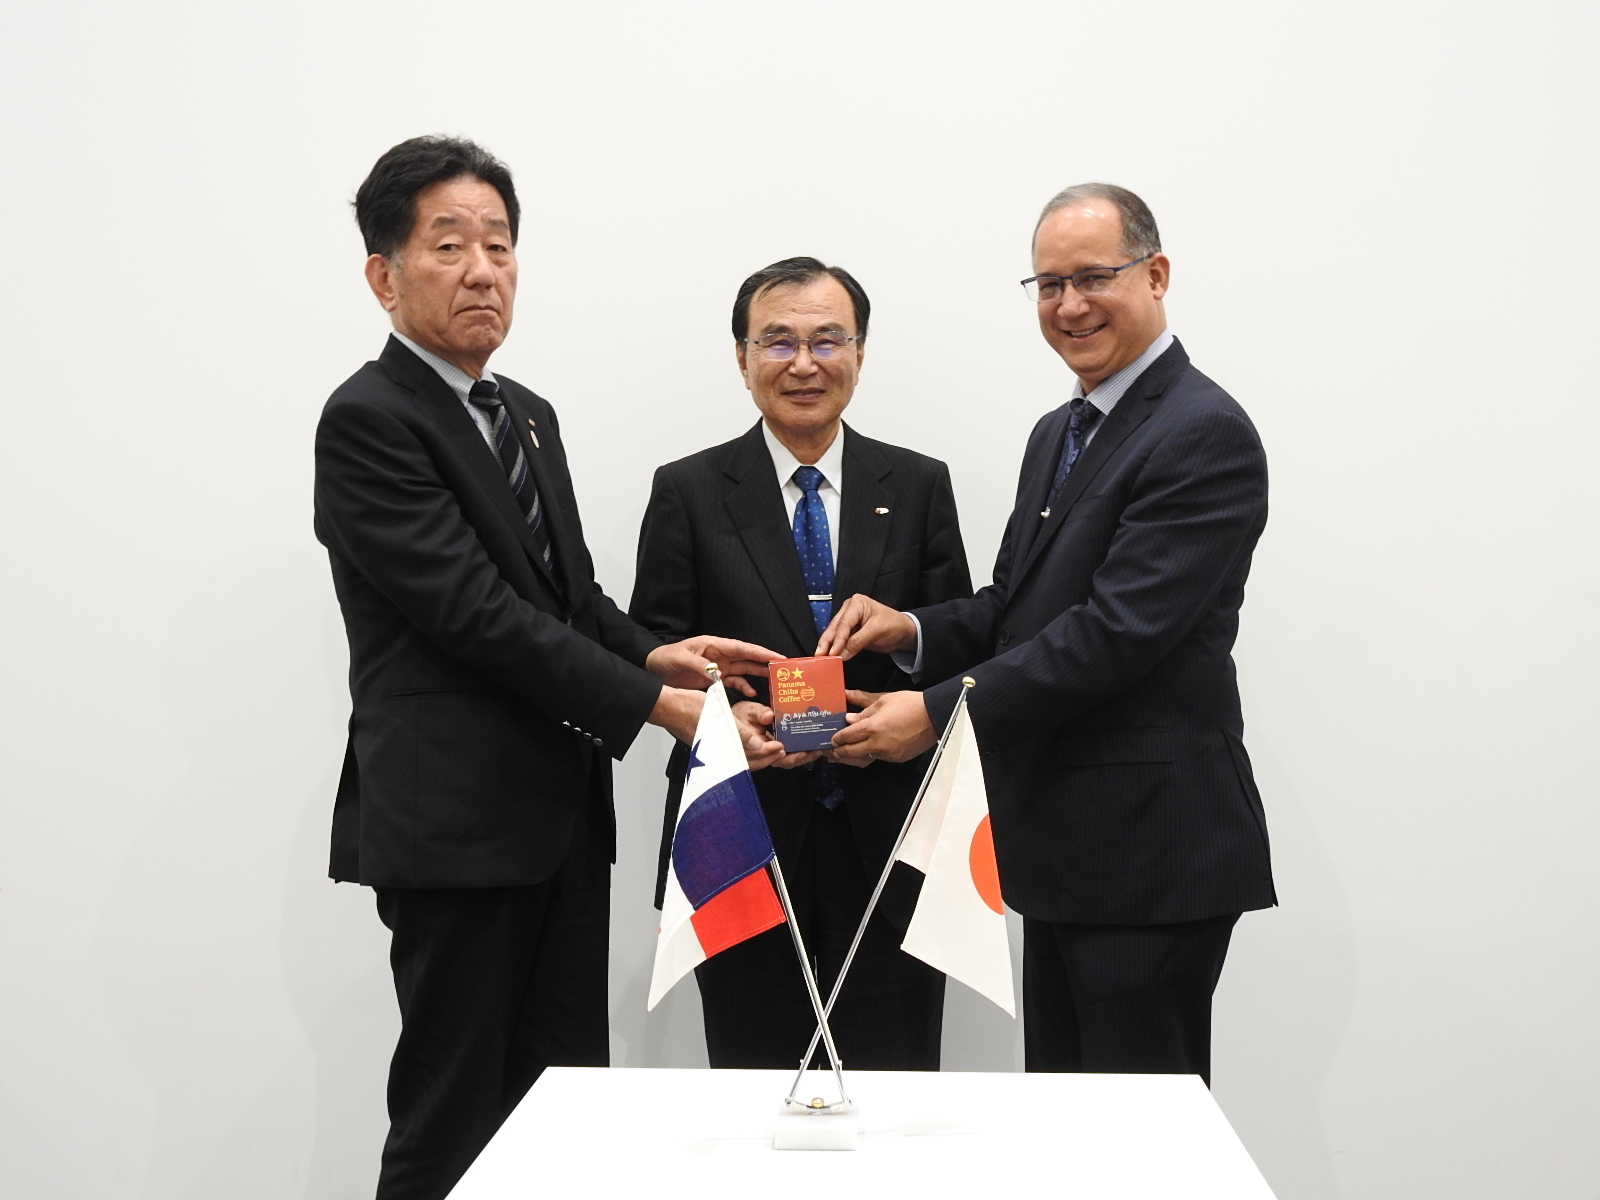 From the right, the Ambassador Diaz, President Tokuhisa and the Chairman Suzuki of  Saza Coffe Co., Ltd.